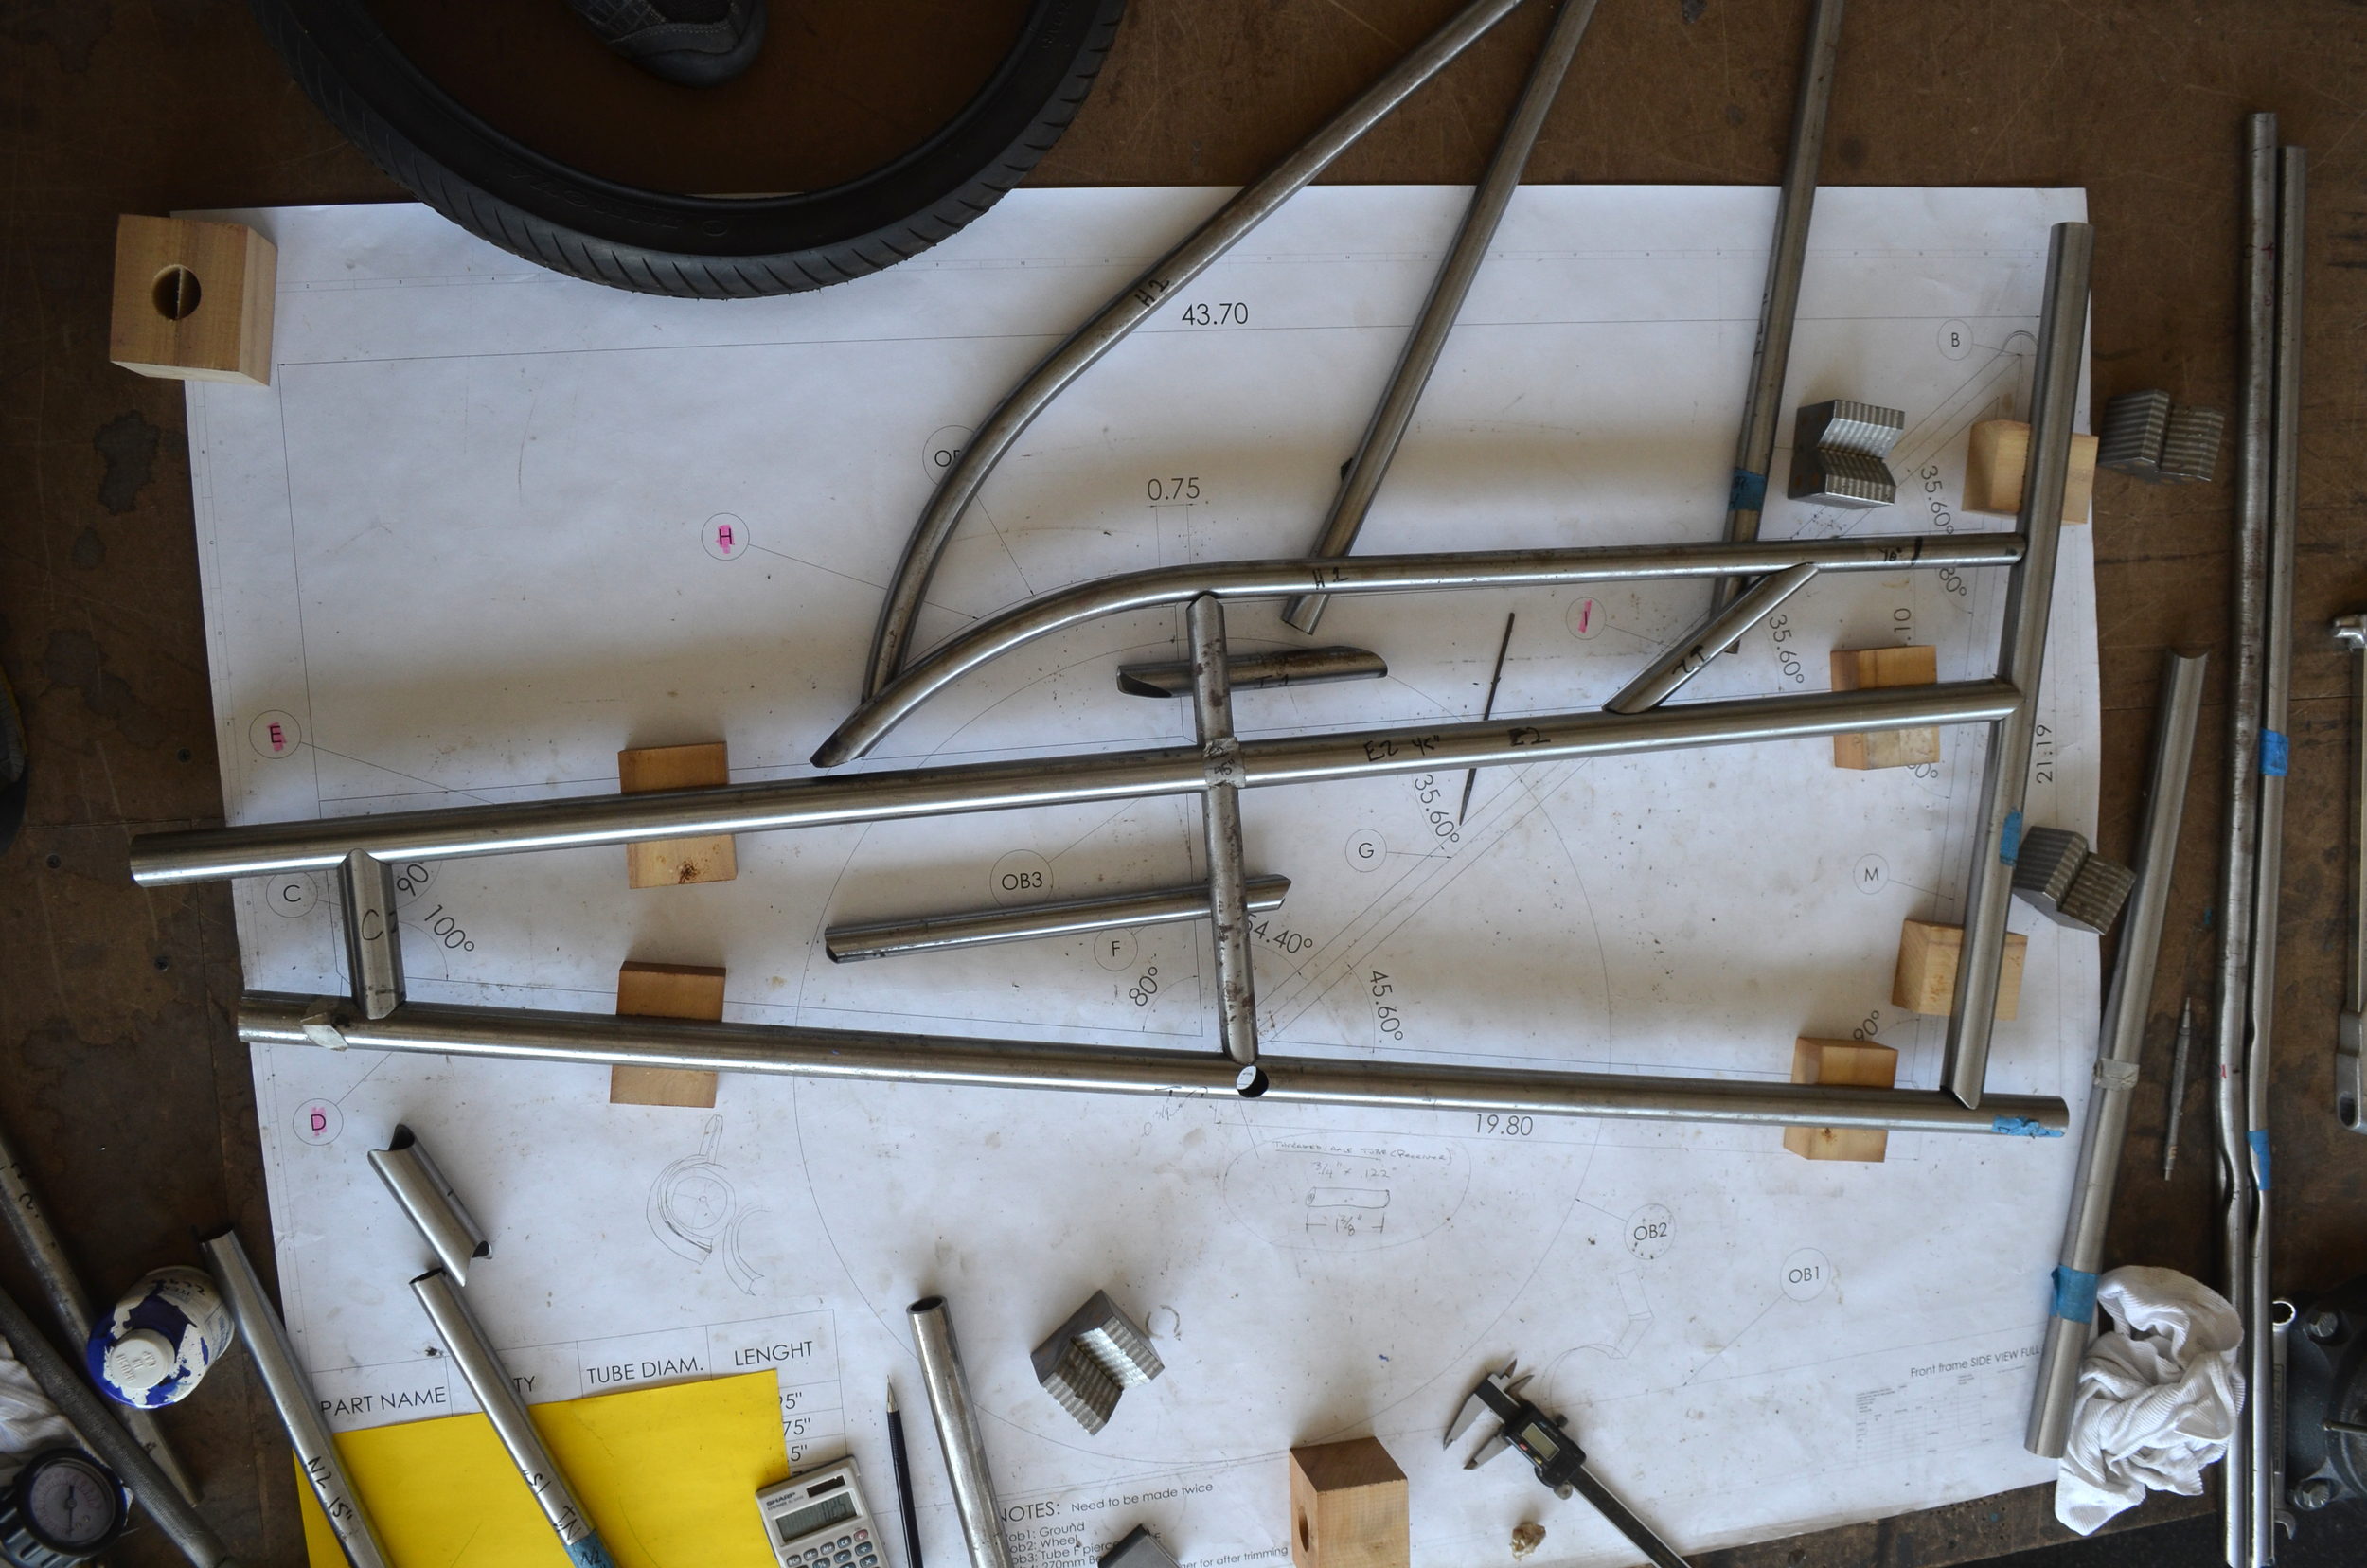 At this point, all the tubes are cut for the side panels and we'll take them down to the brazing shed next friday to lay them out and tack them up (no problem right?)